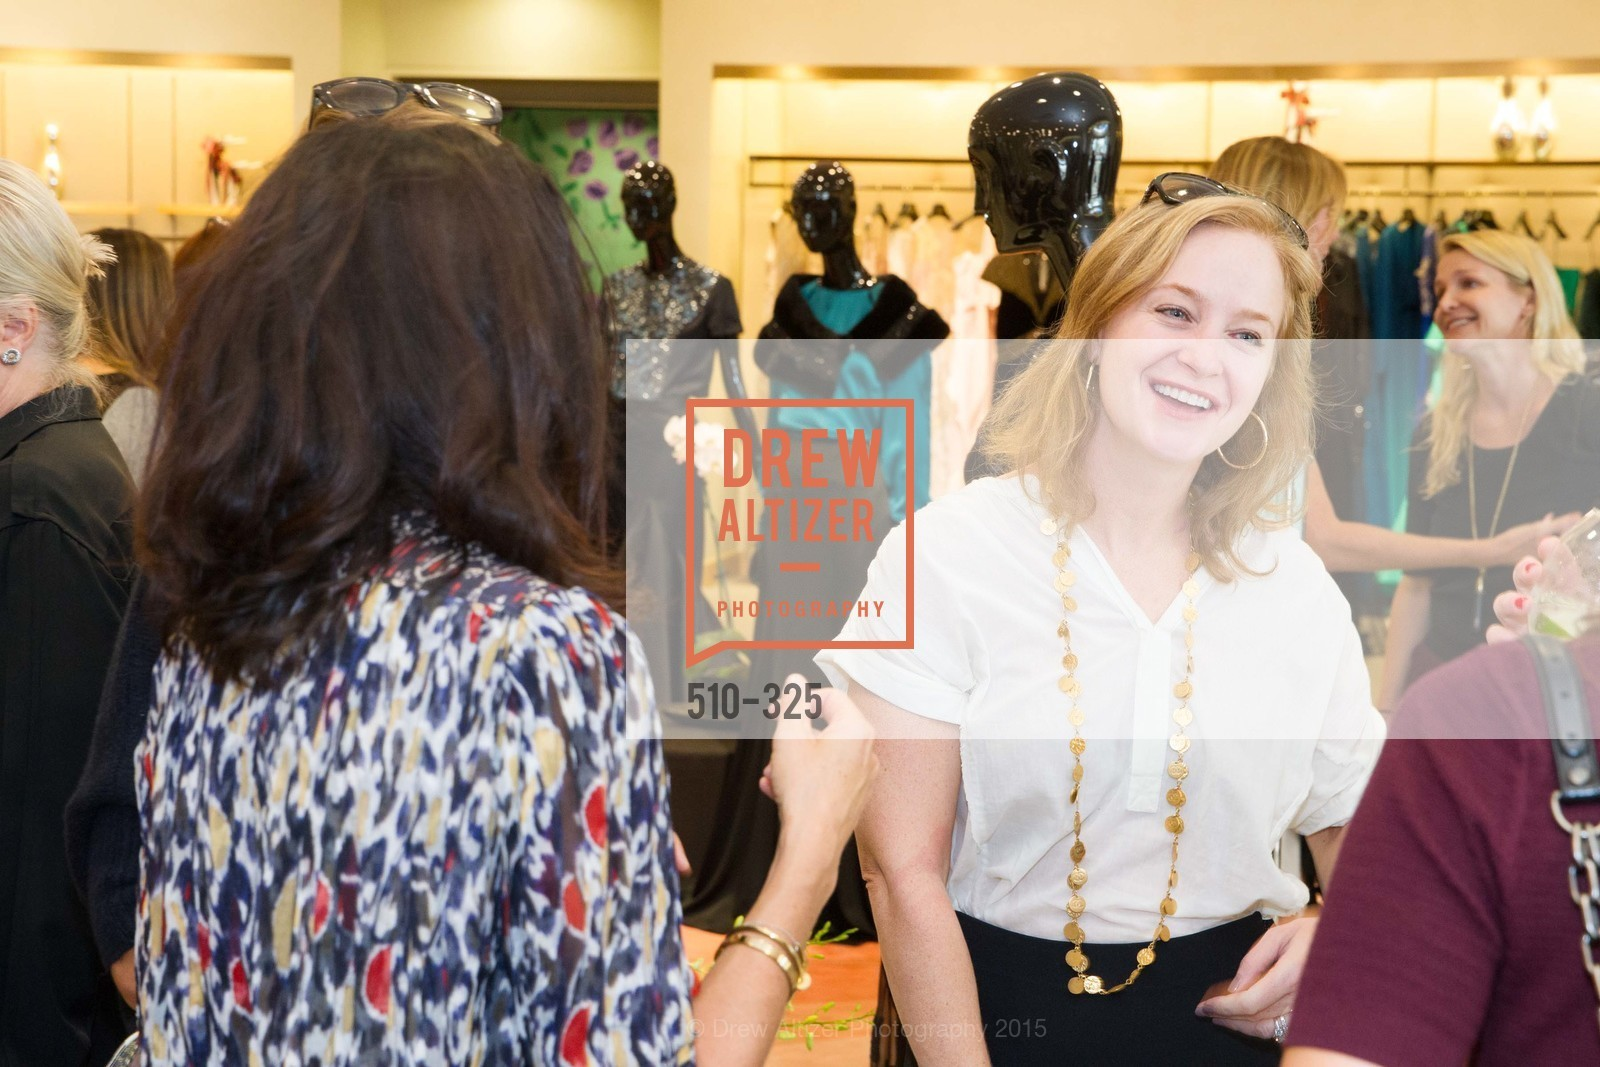 Claire Spaht, Maiyet Reception at Neiman Marcus, Neiman Marcus, September 29th, 2015,Drew Altizer, Drew Altizer Photography, full-service agency, private events, San Francisco photographer, photographer california